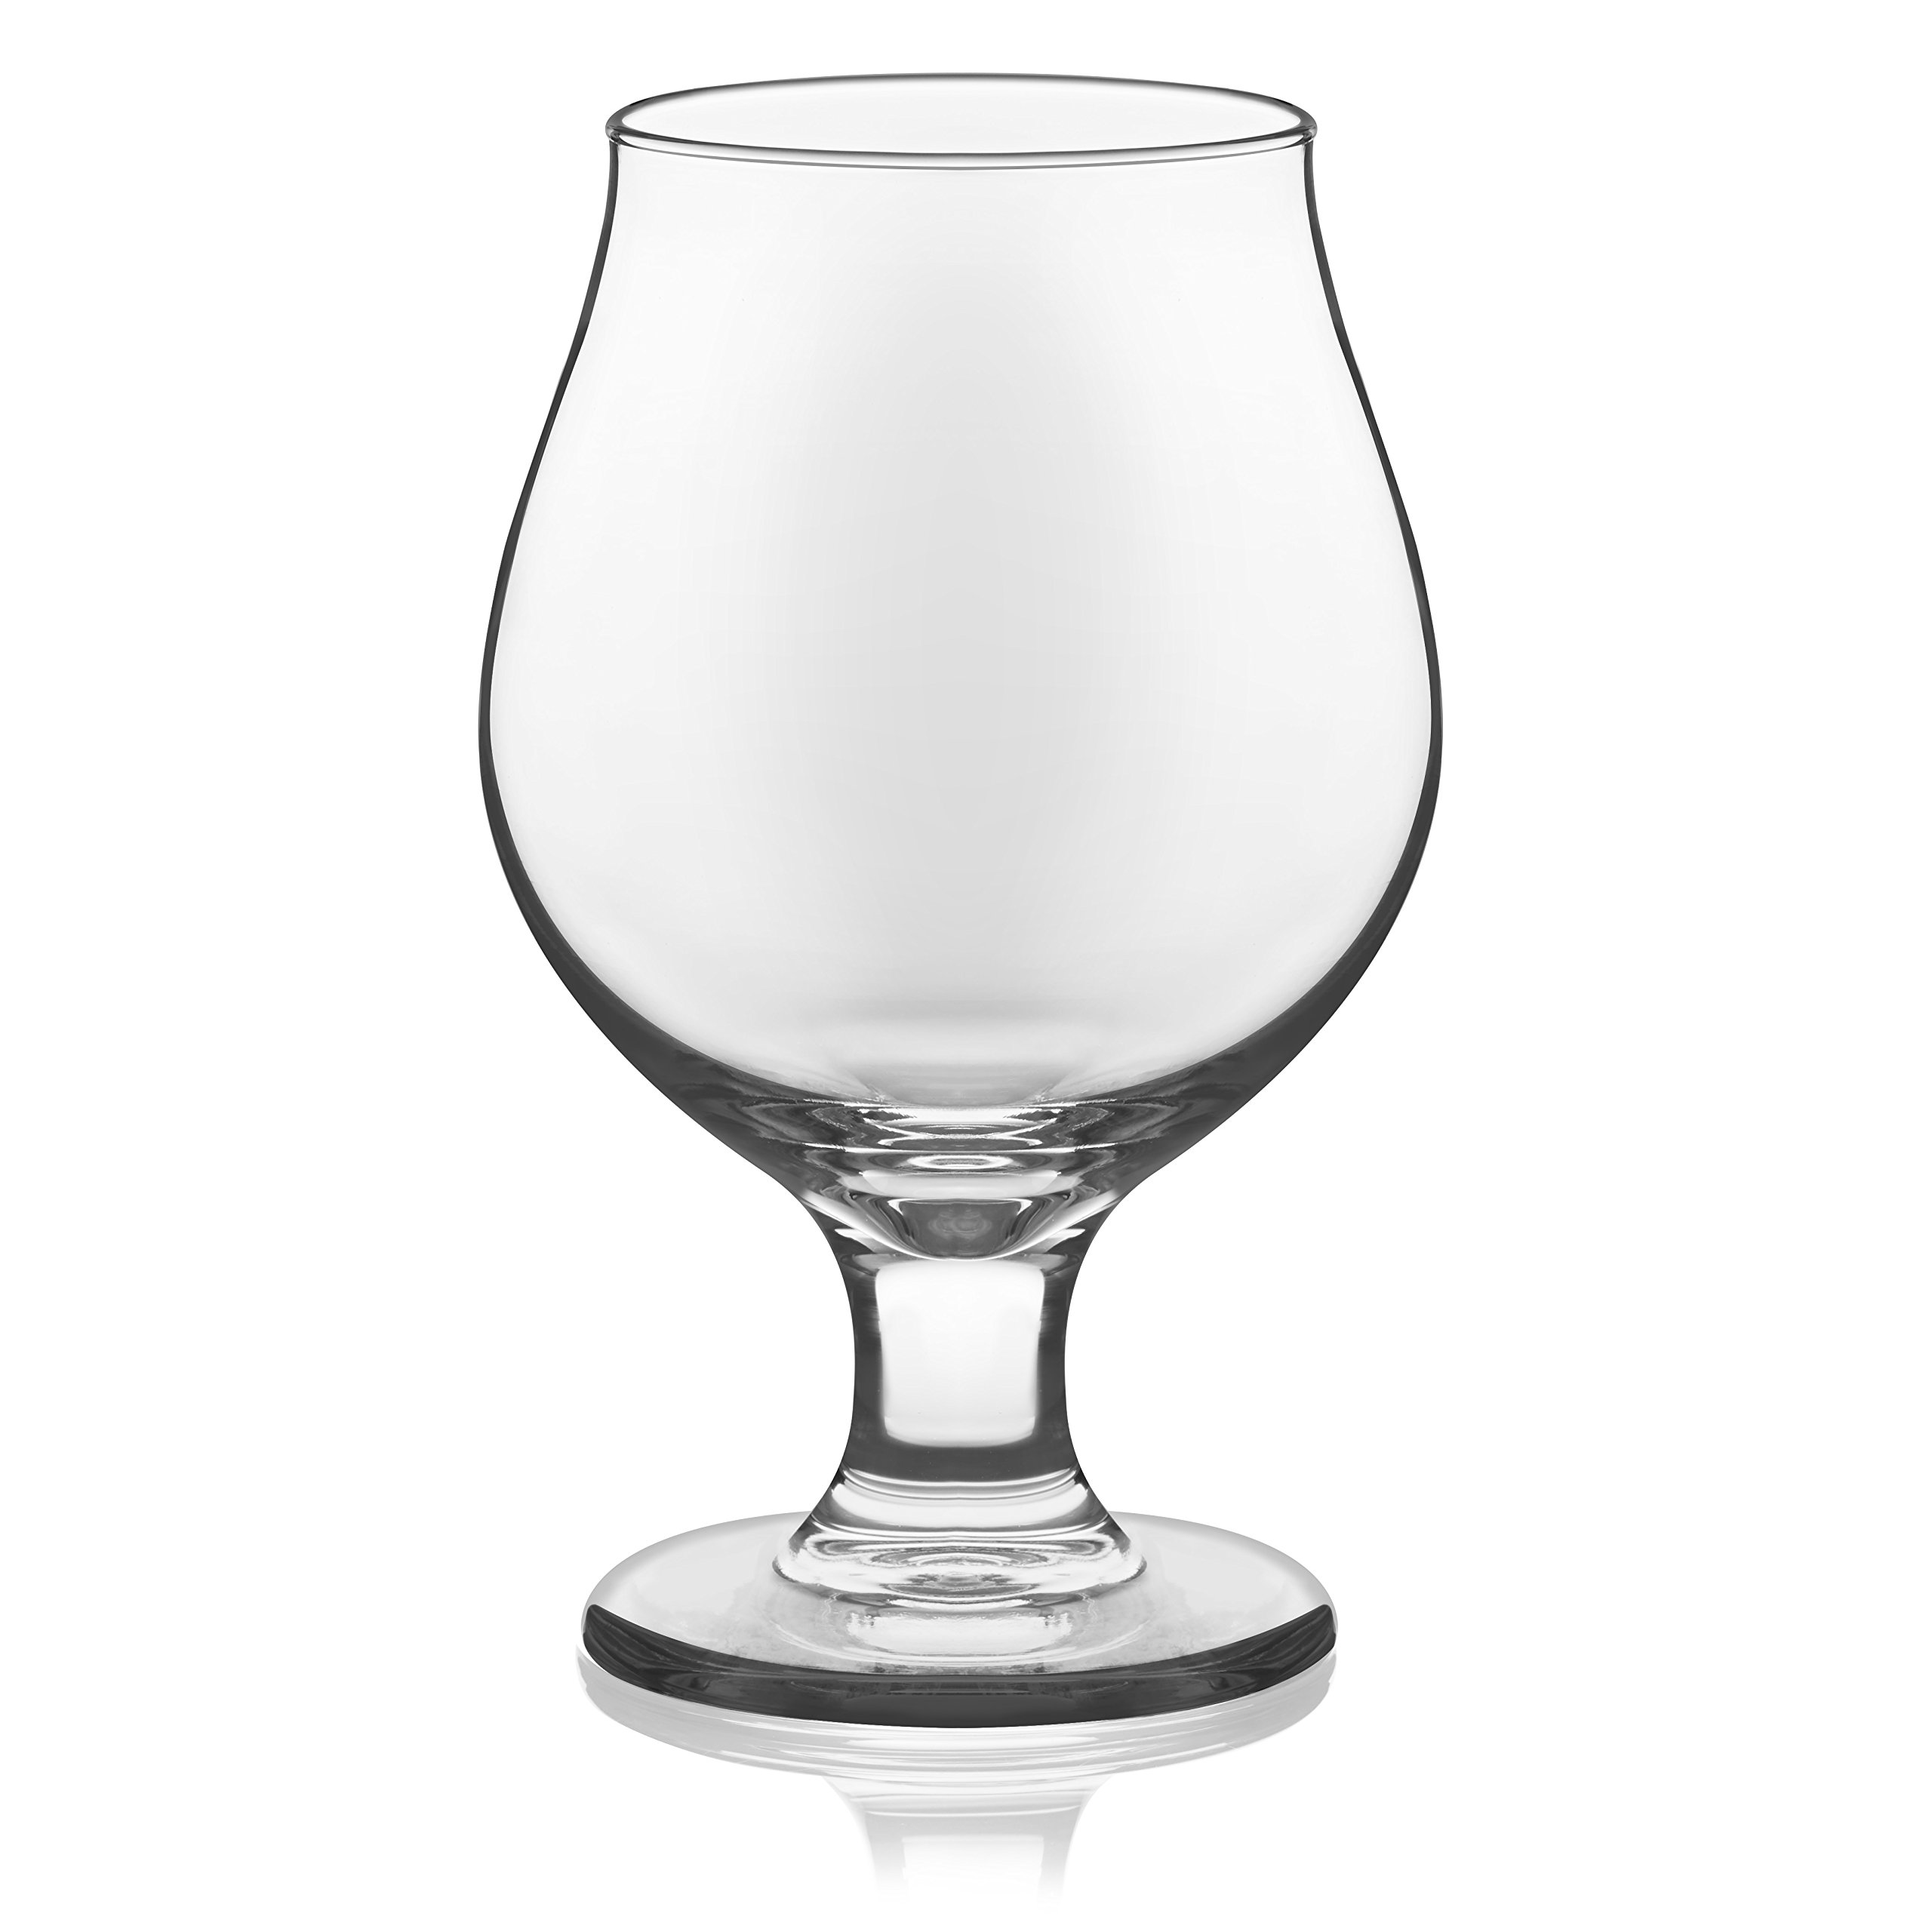 Libbey Craft Brews Belgian Ale Beer Glass, 16-ounce, Set of 4 by Libbey (Image #2)